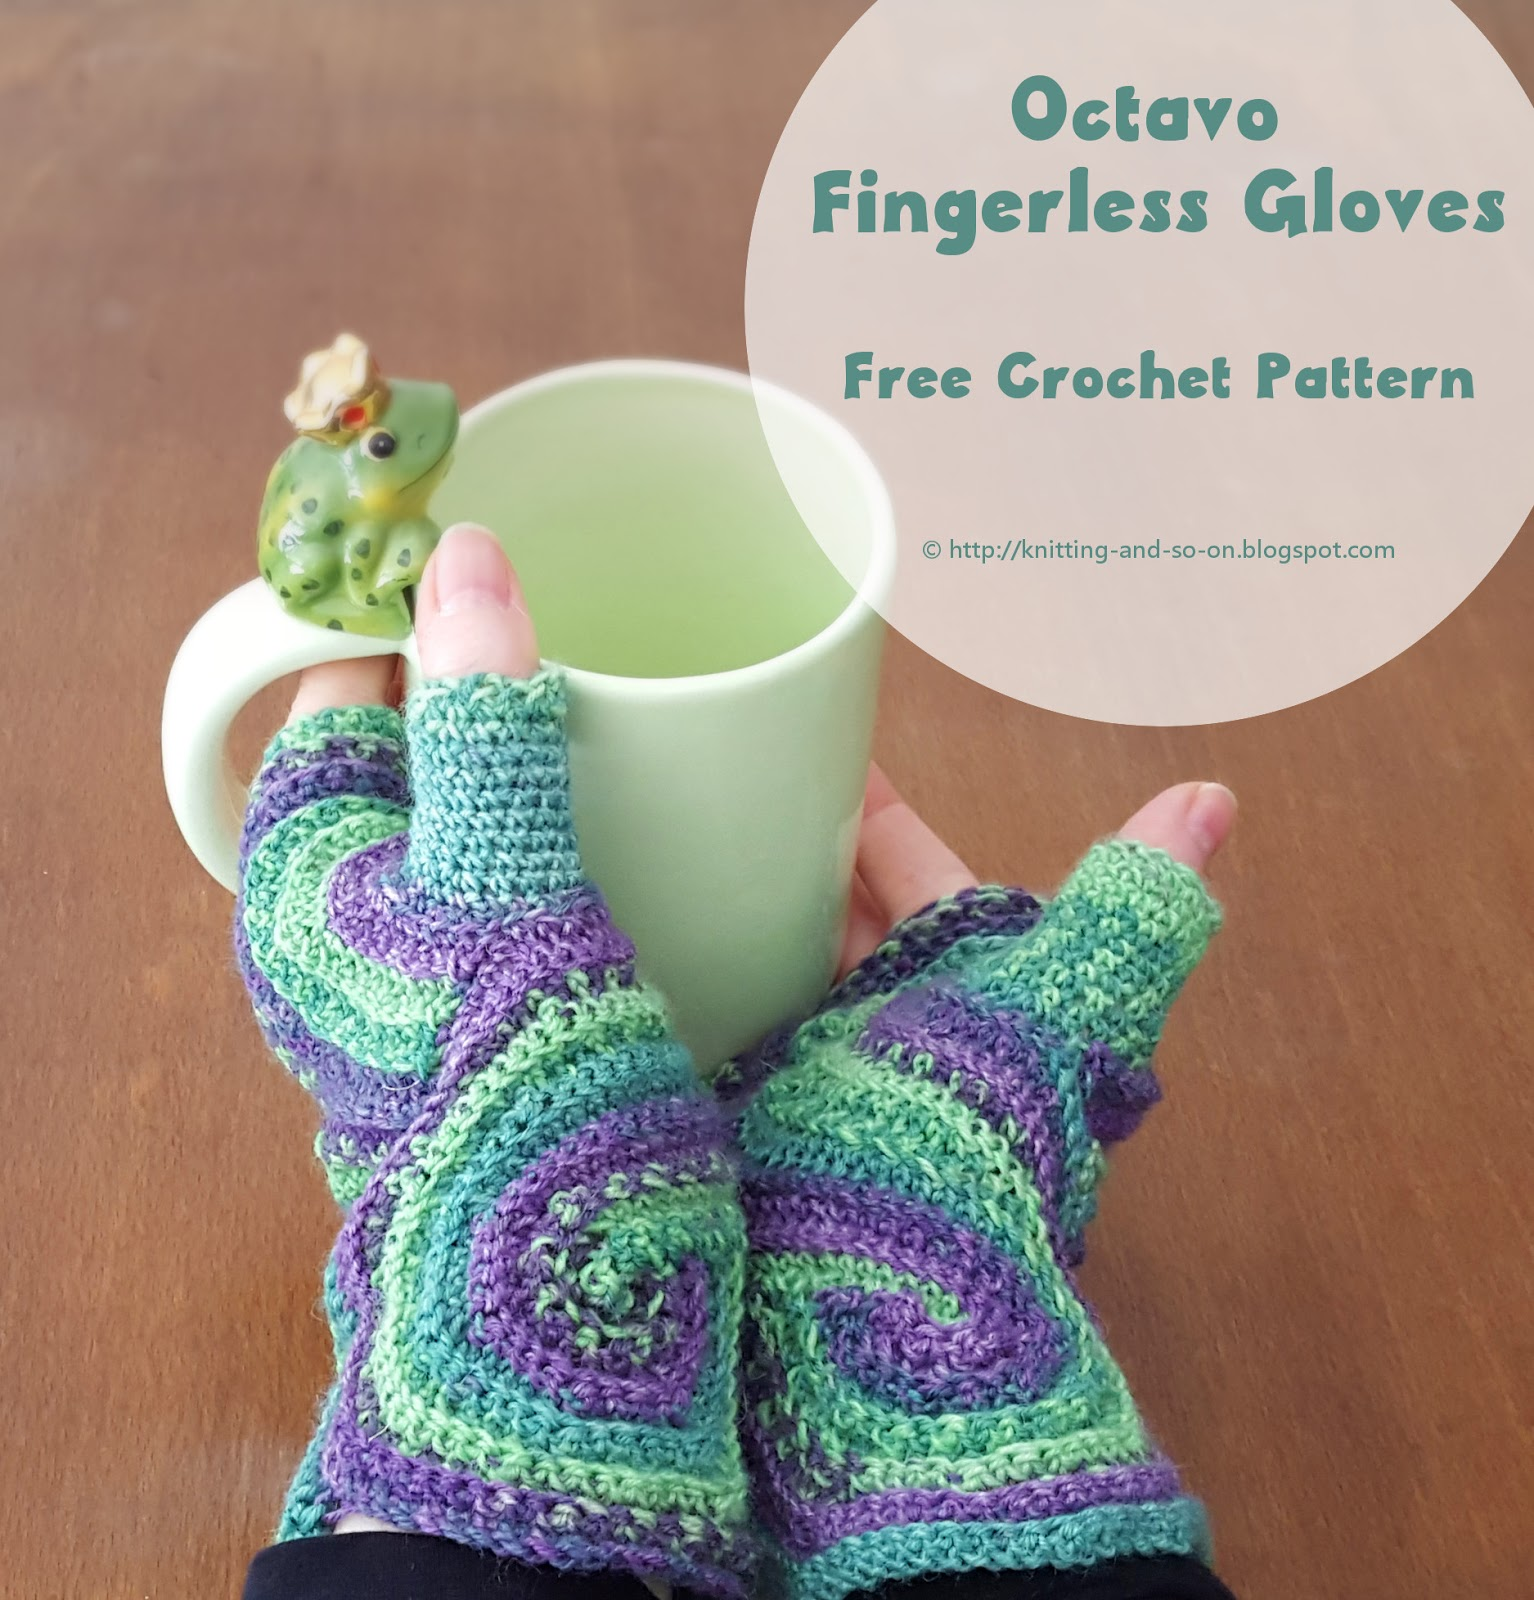 Free Crochet Patterns For Fingerless Gloves And Mitts : Knitting and so on: Octavo Fingerless Gloves